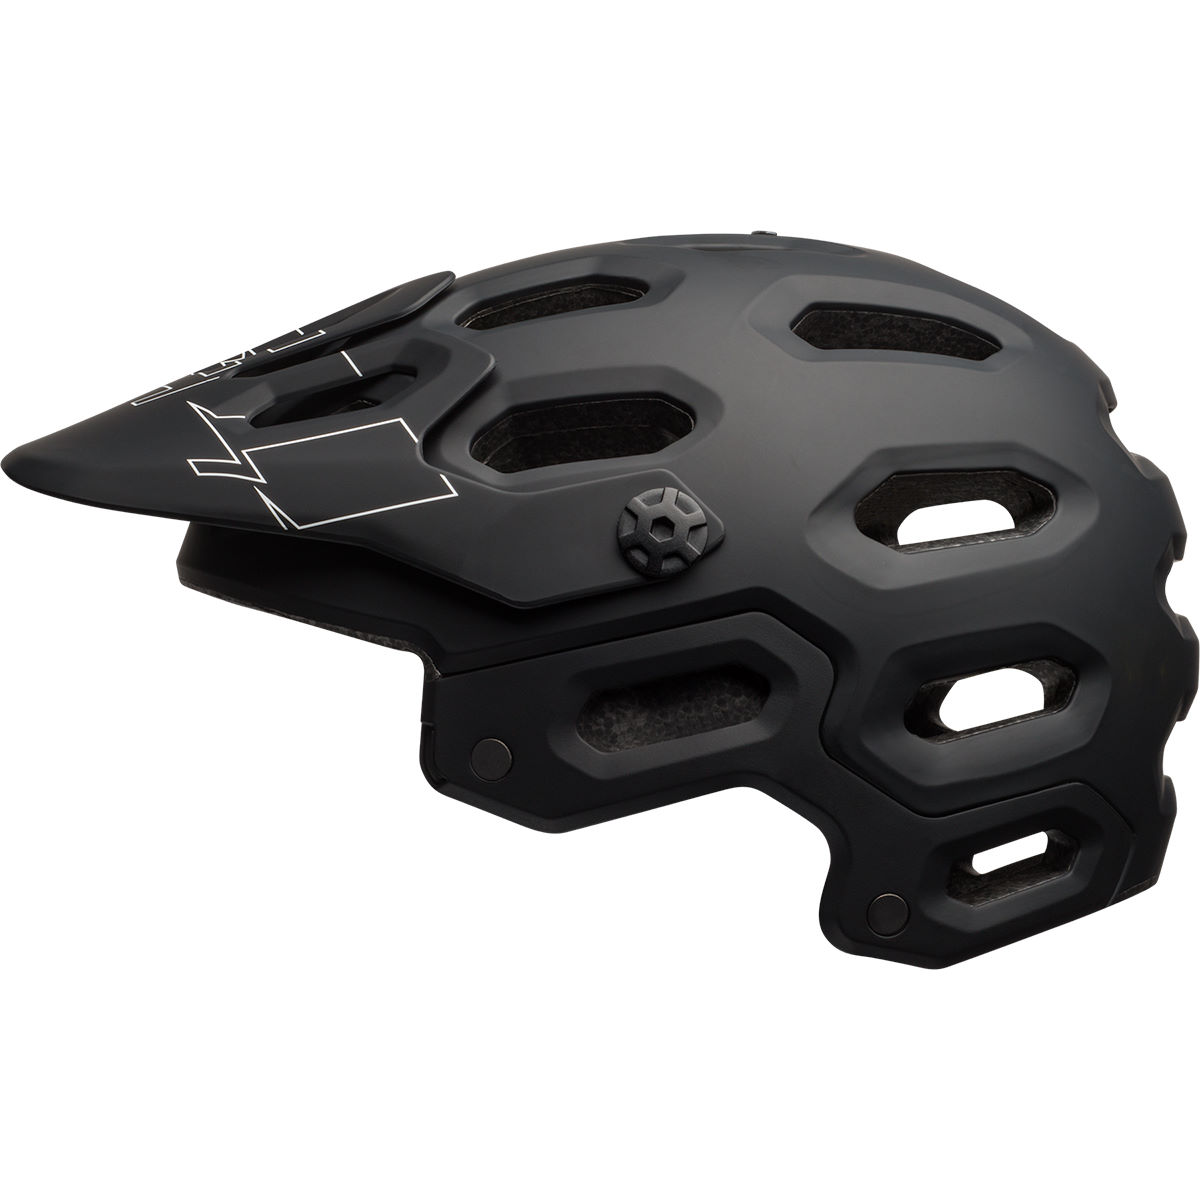 Casque Bell Super 3 - M Matte Black/White Casques VTT